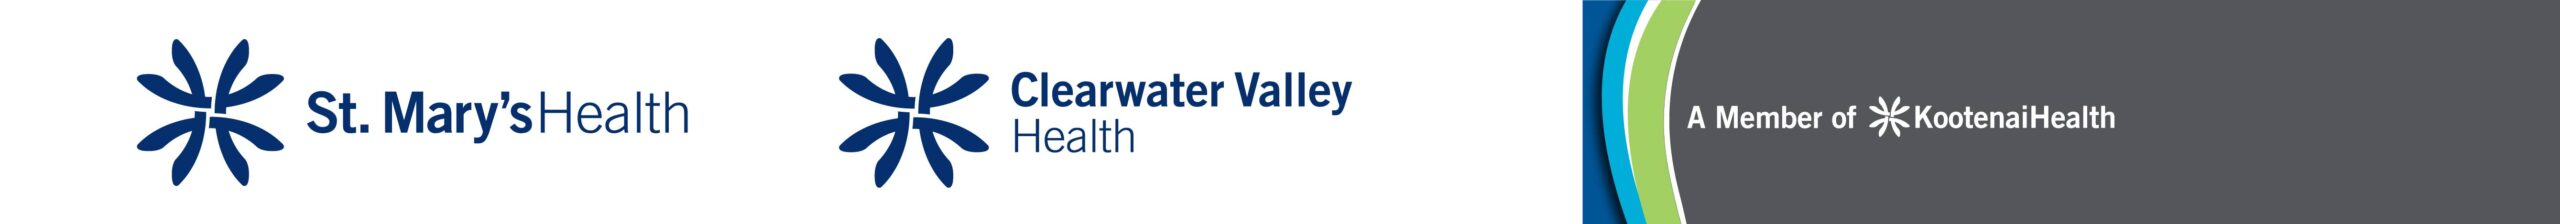 St. Mary's Health & Clearwater Valley Health Logo